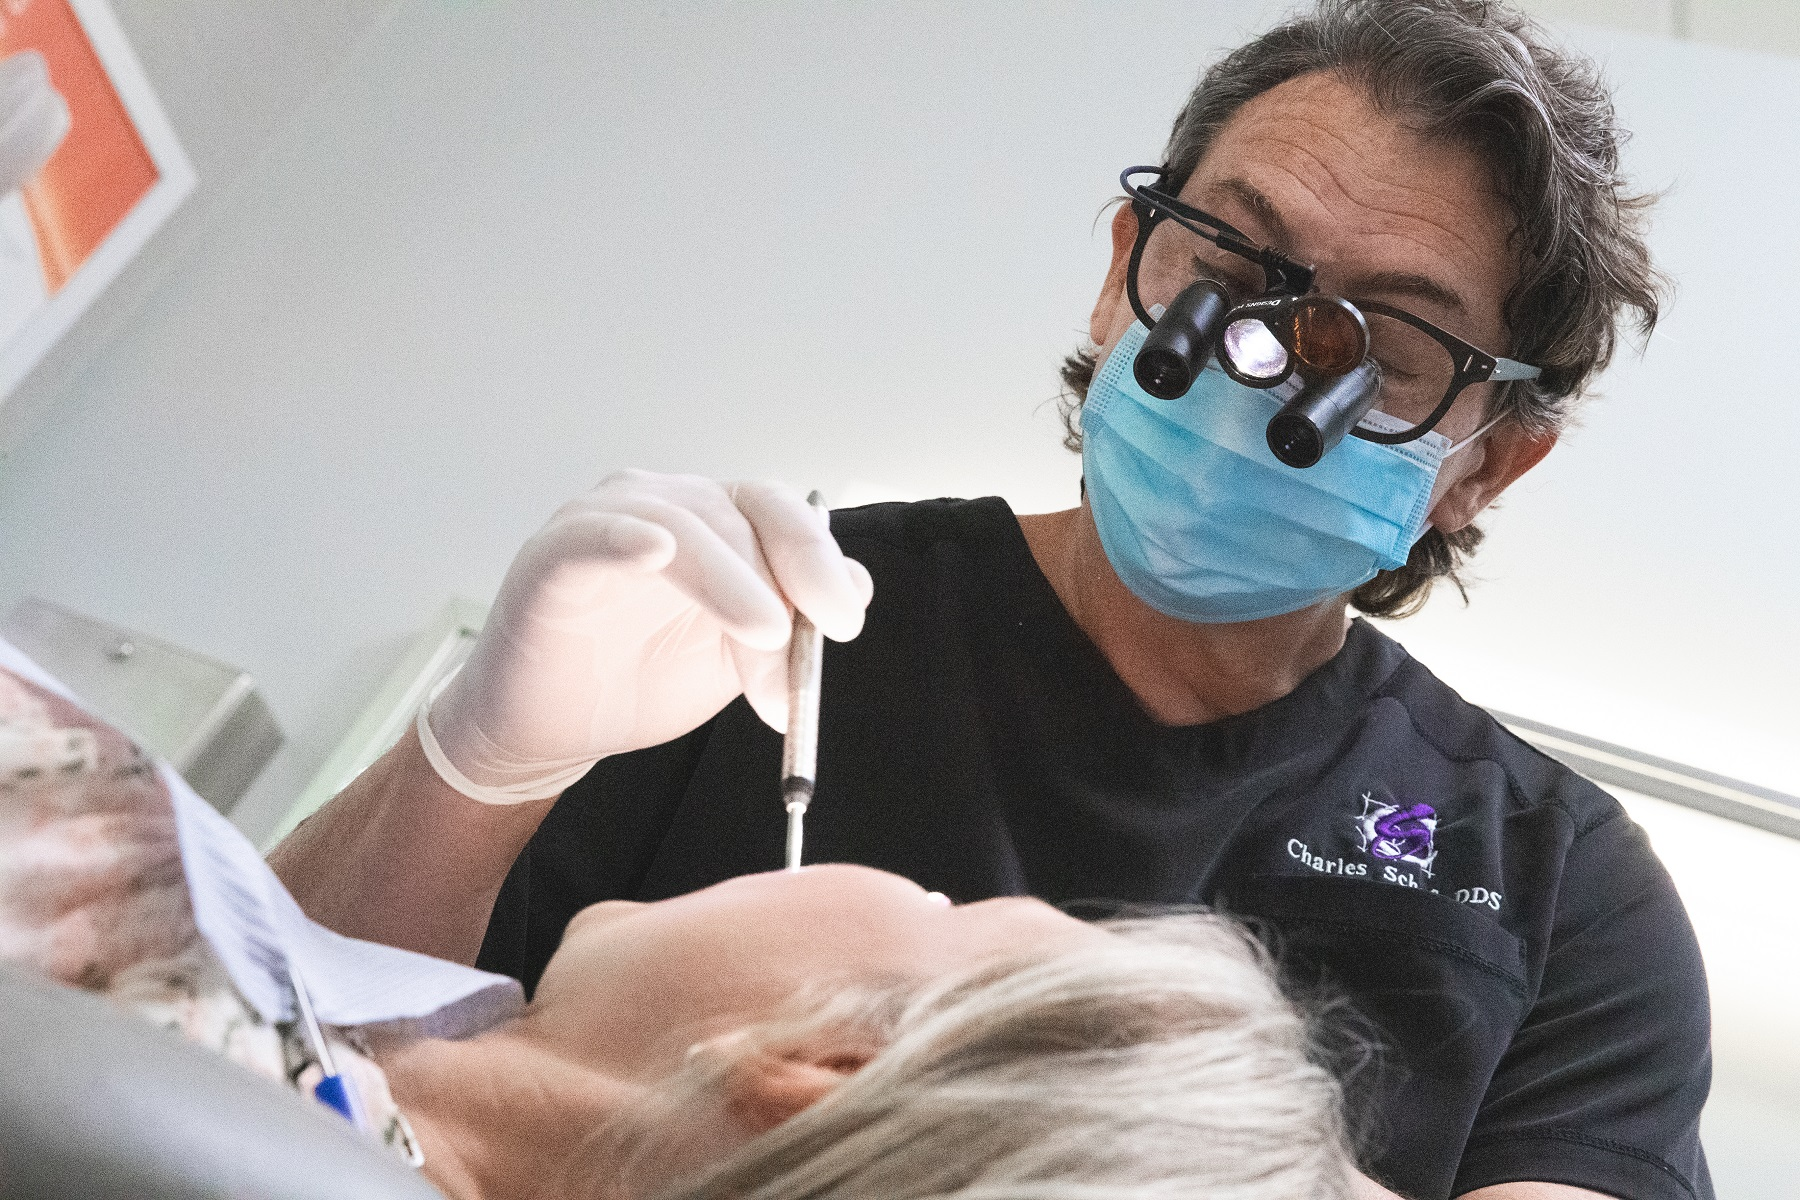 Dr. Schof working on patient with dental emergency